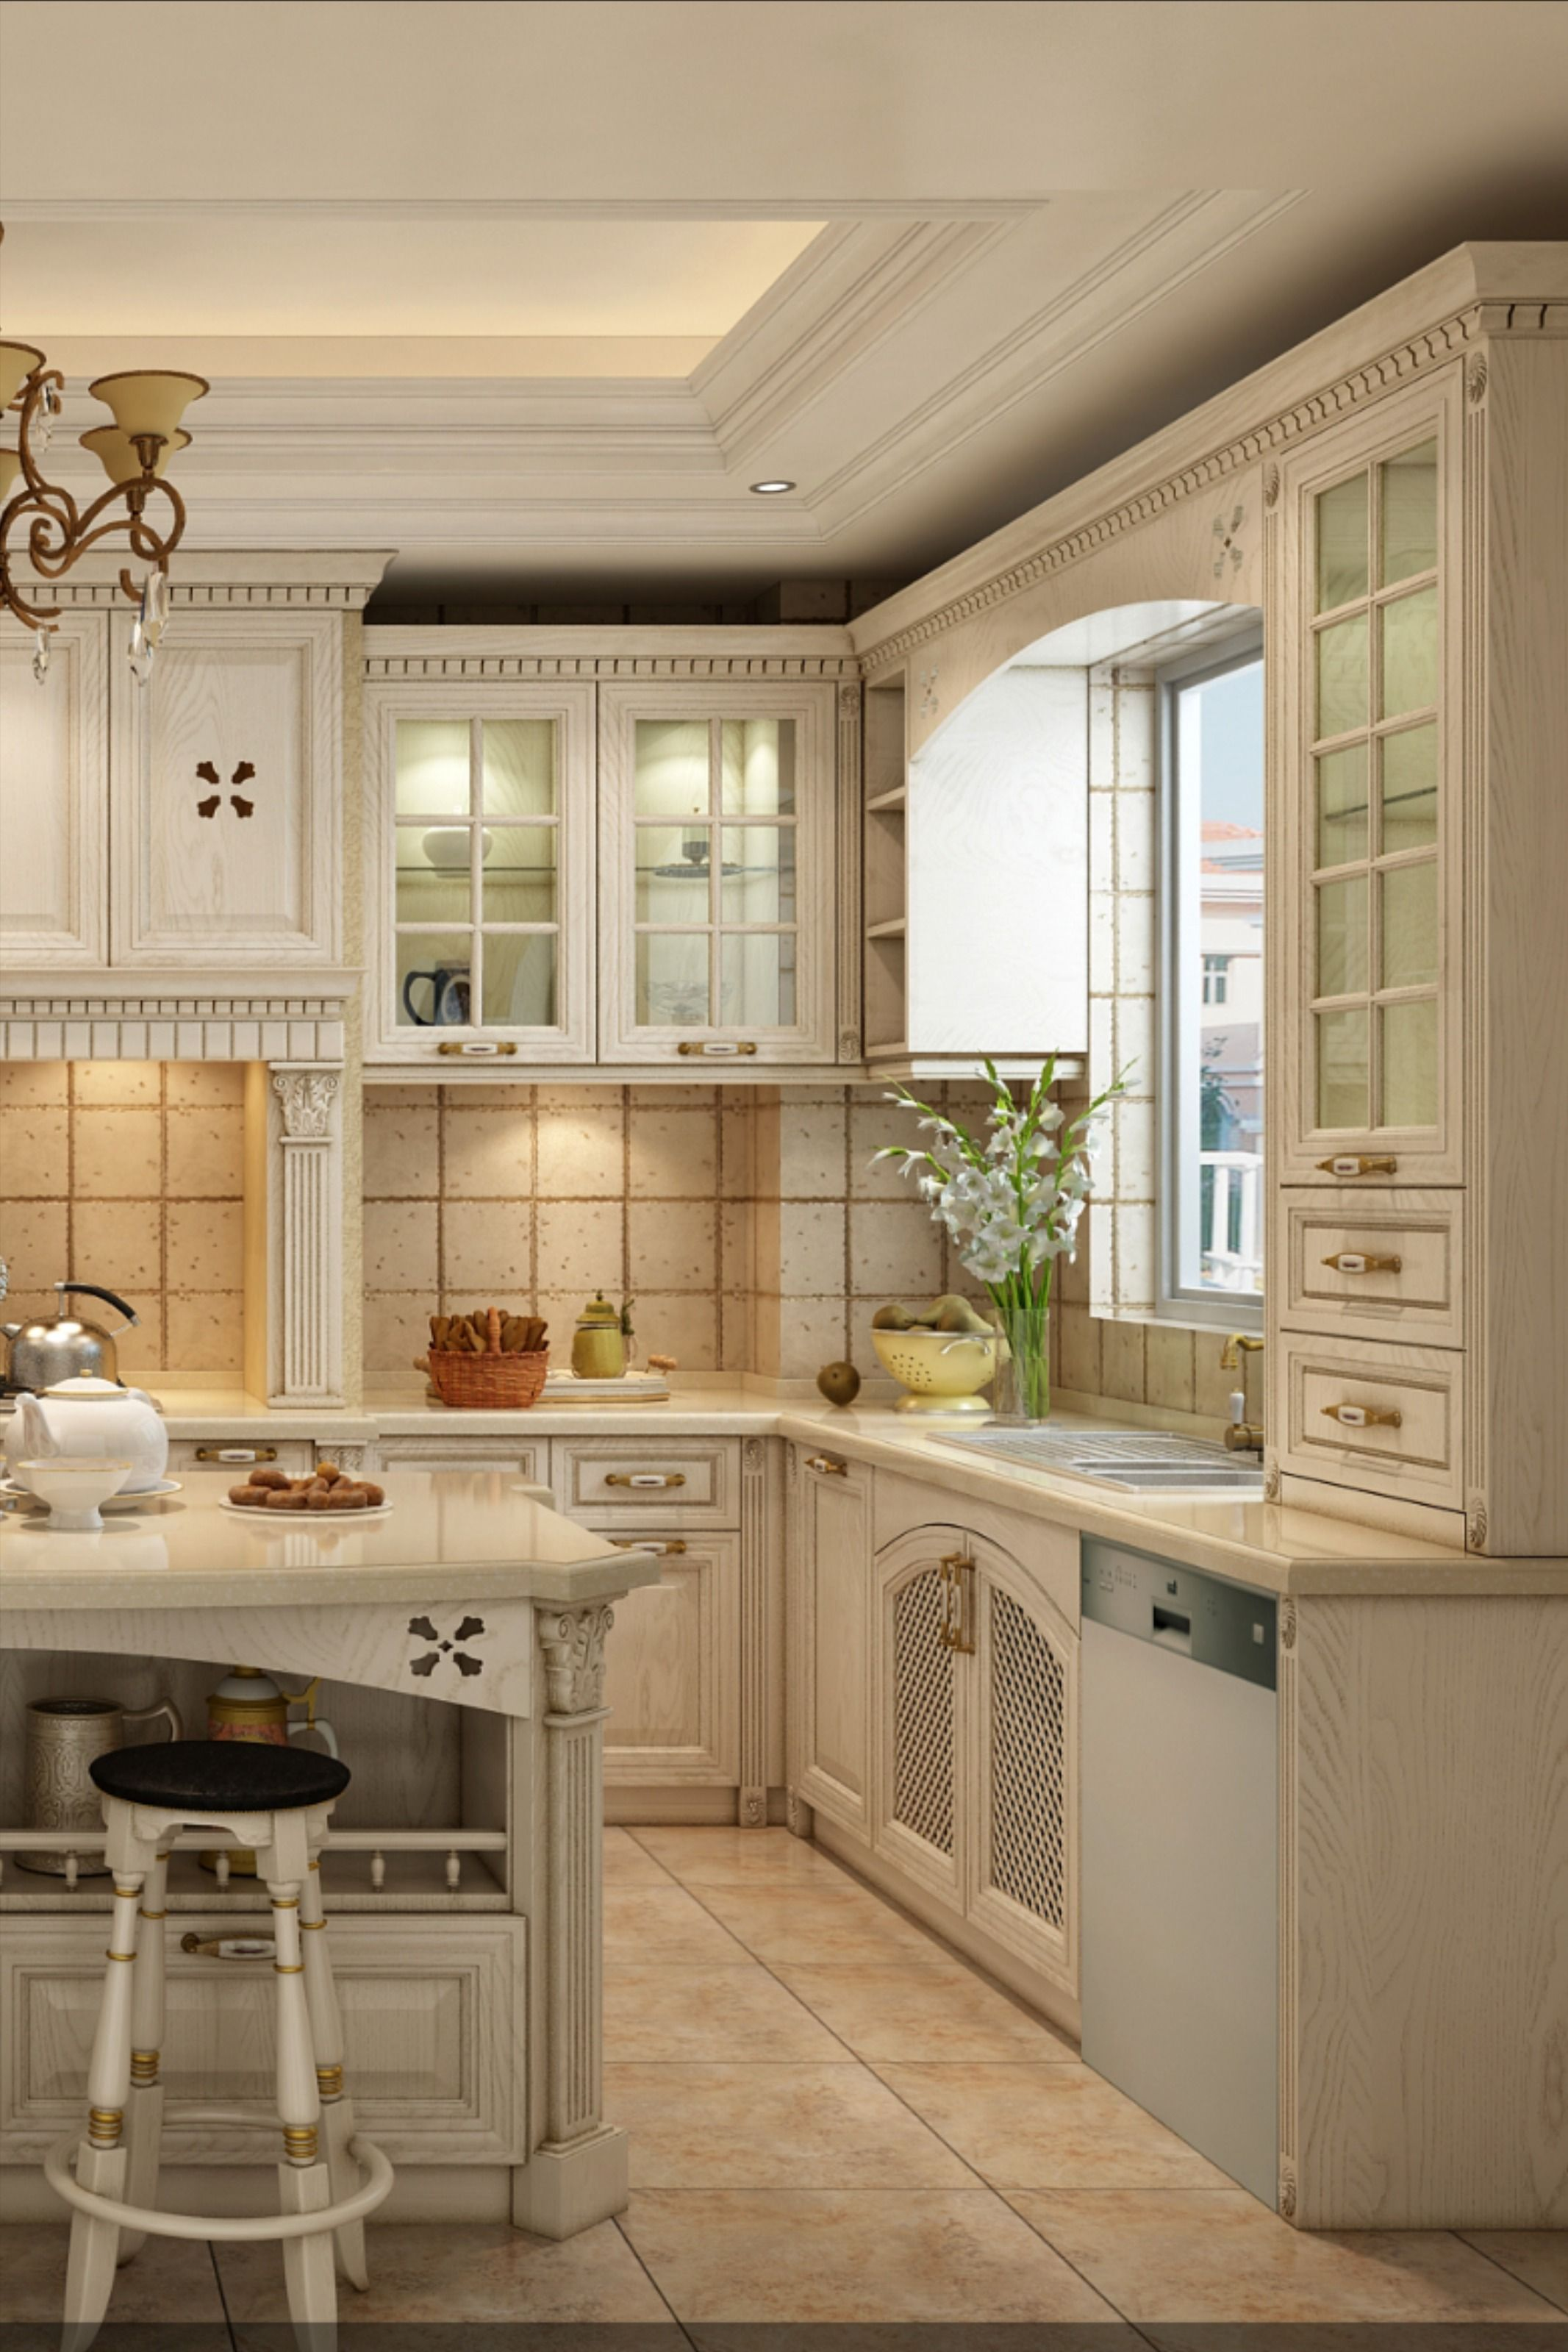 Classic Solid Wood Kitchen Cabinet In 2020 Wood Kitchen Cabinets Kitchen Solid Wood Kitchen Cabinets